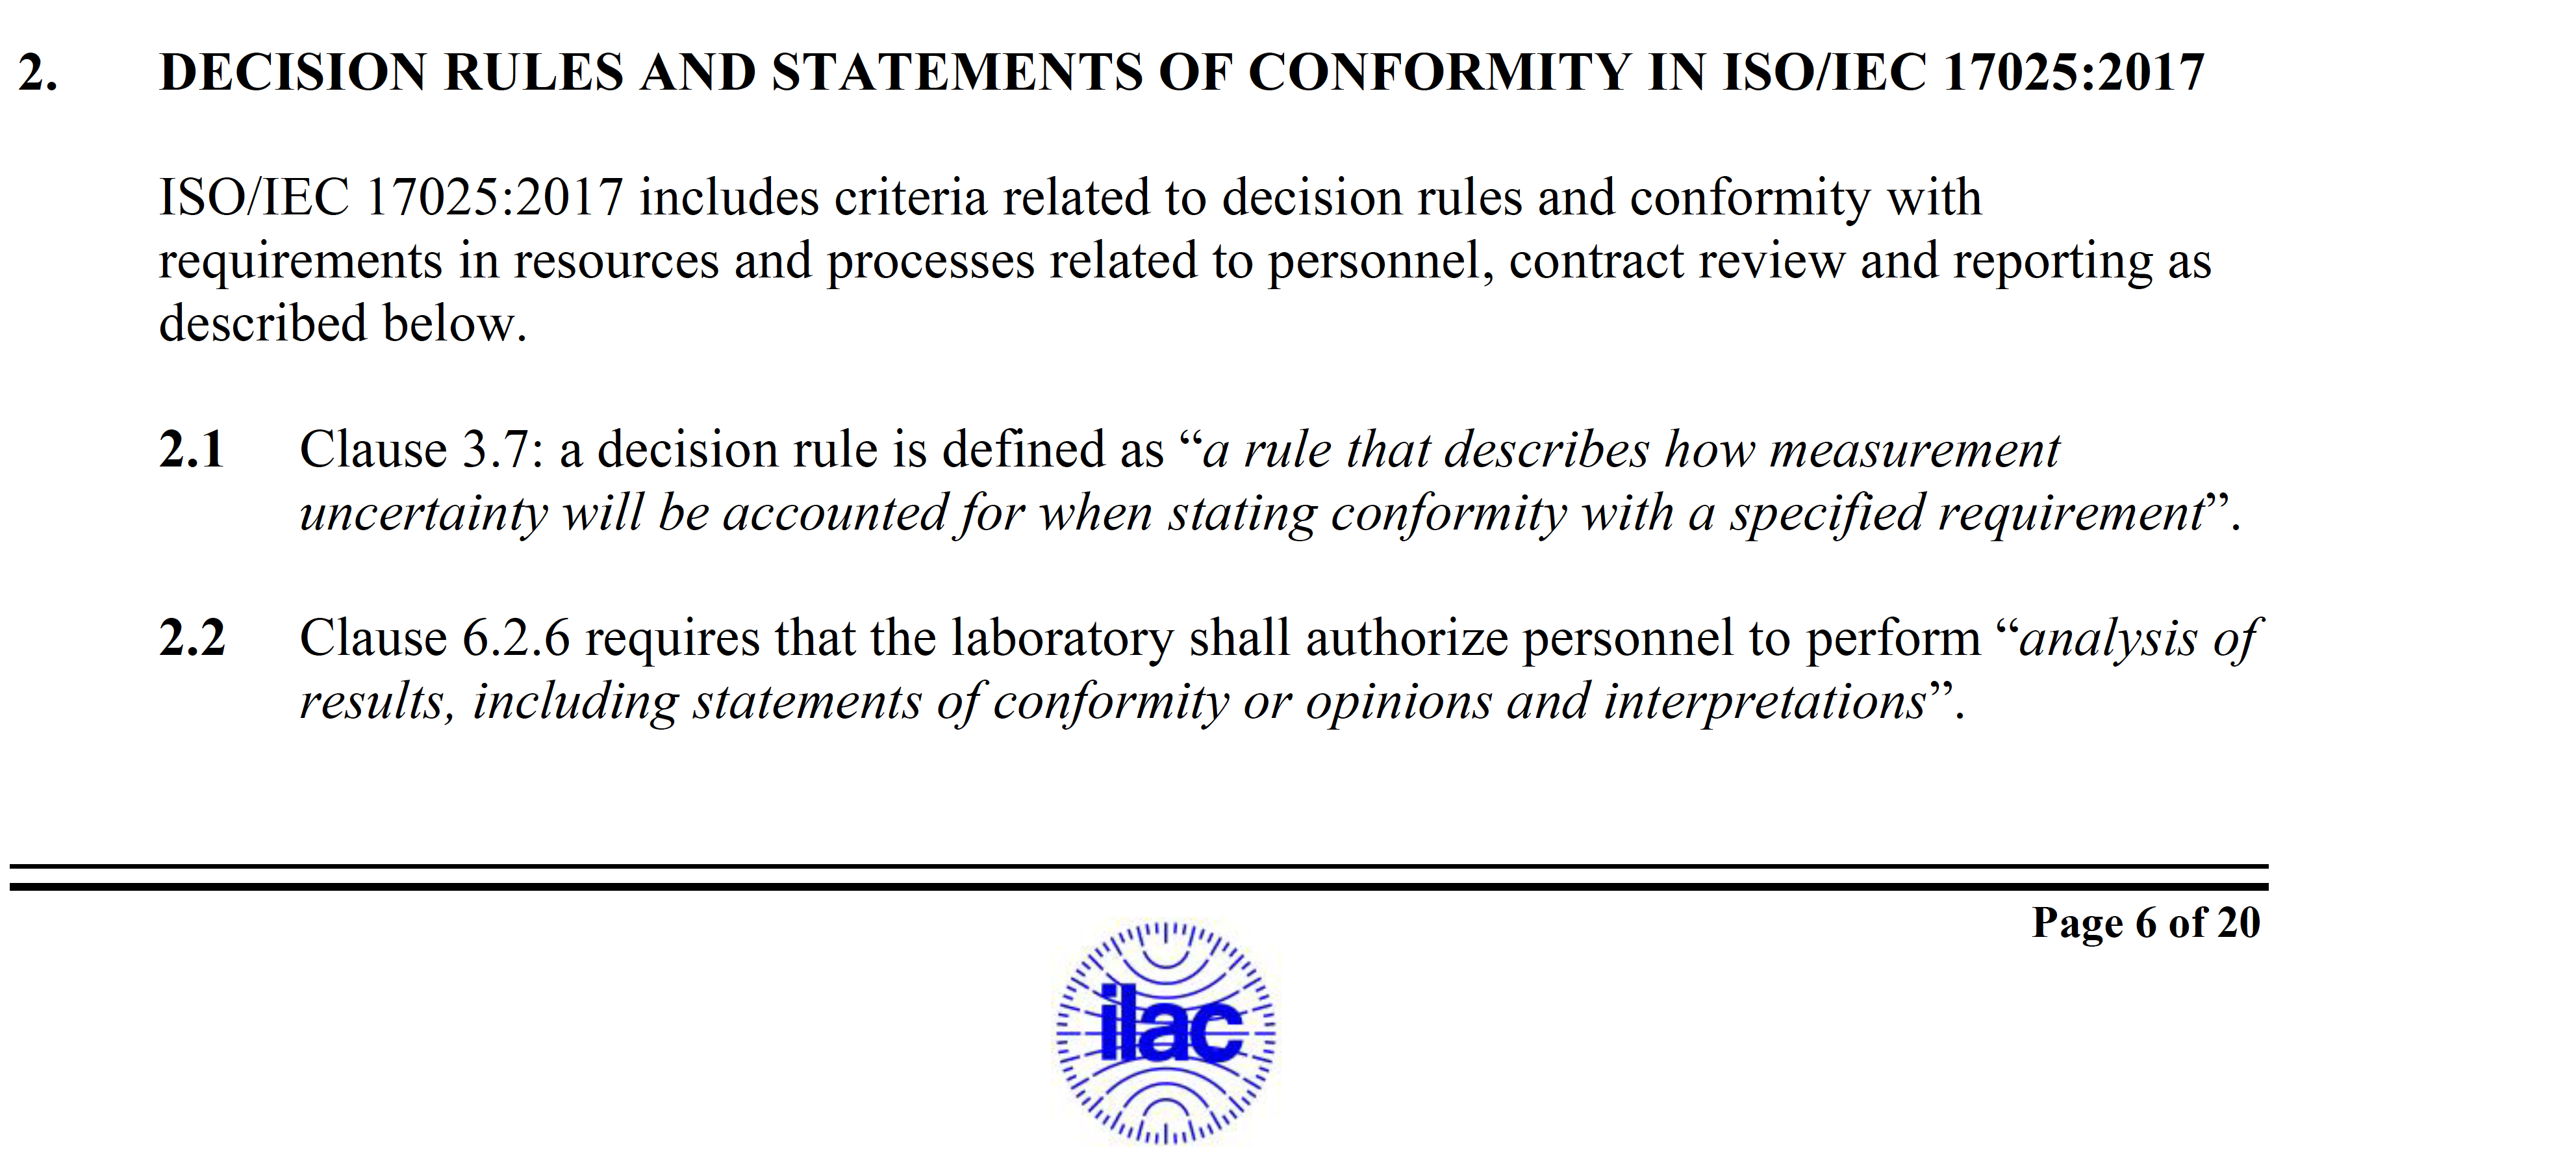 decision rules and statements of conformity_ILAC